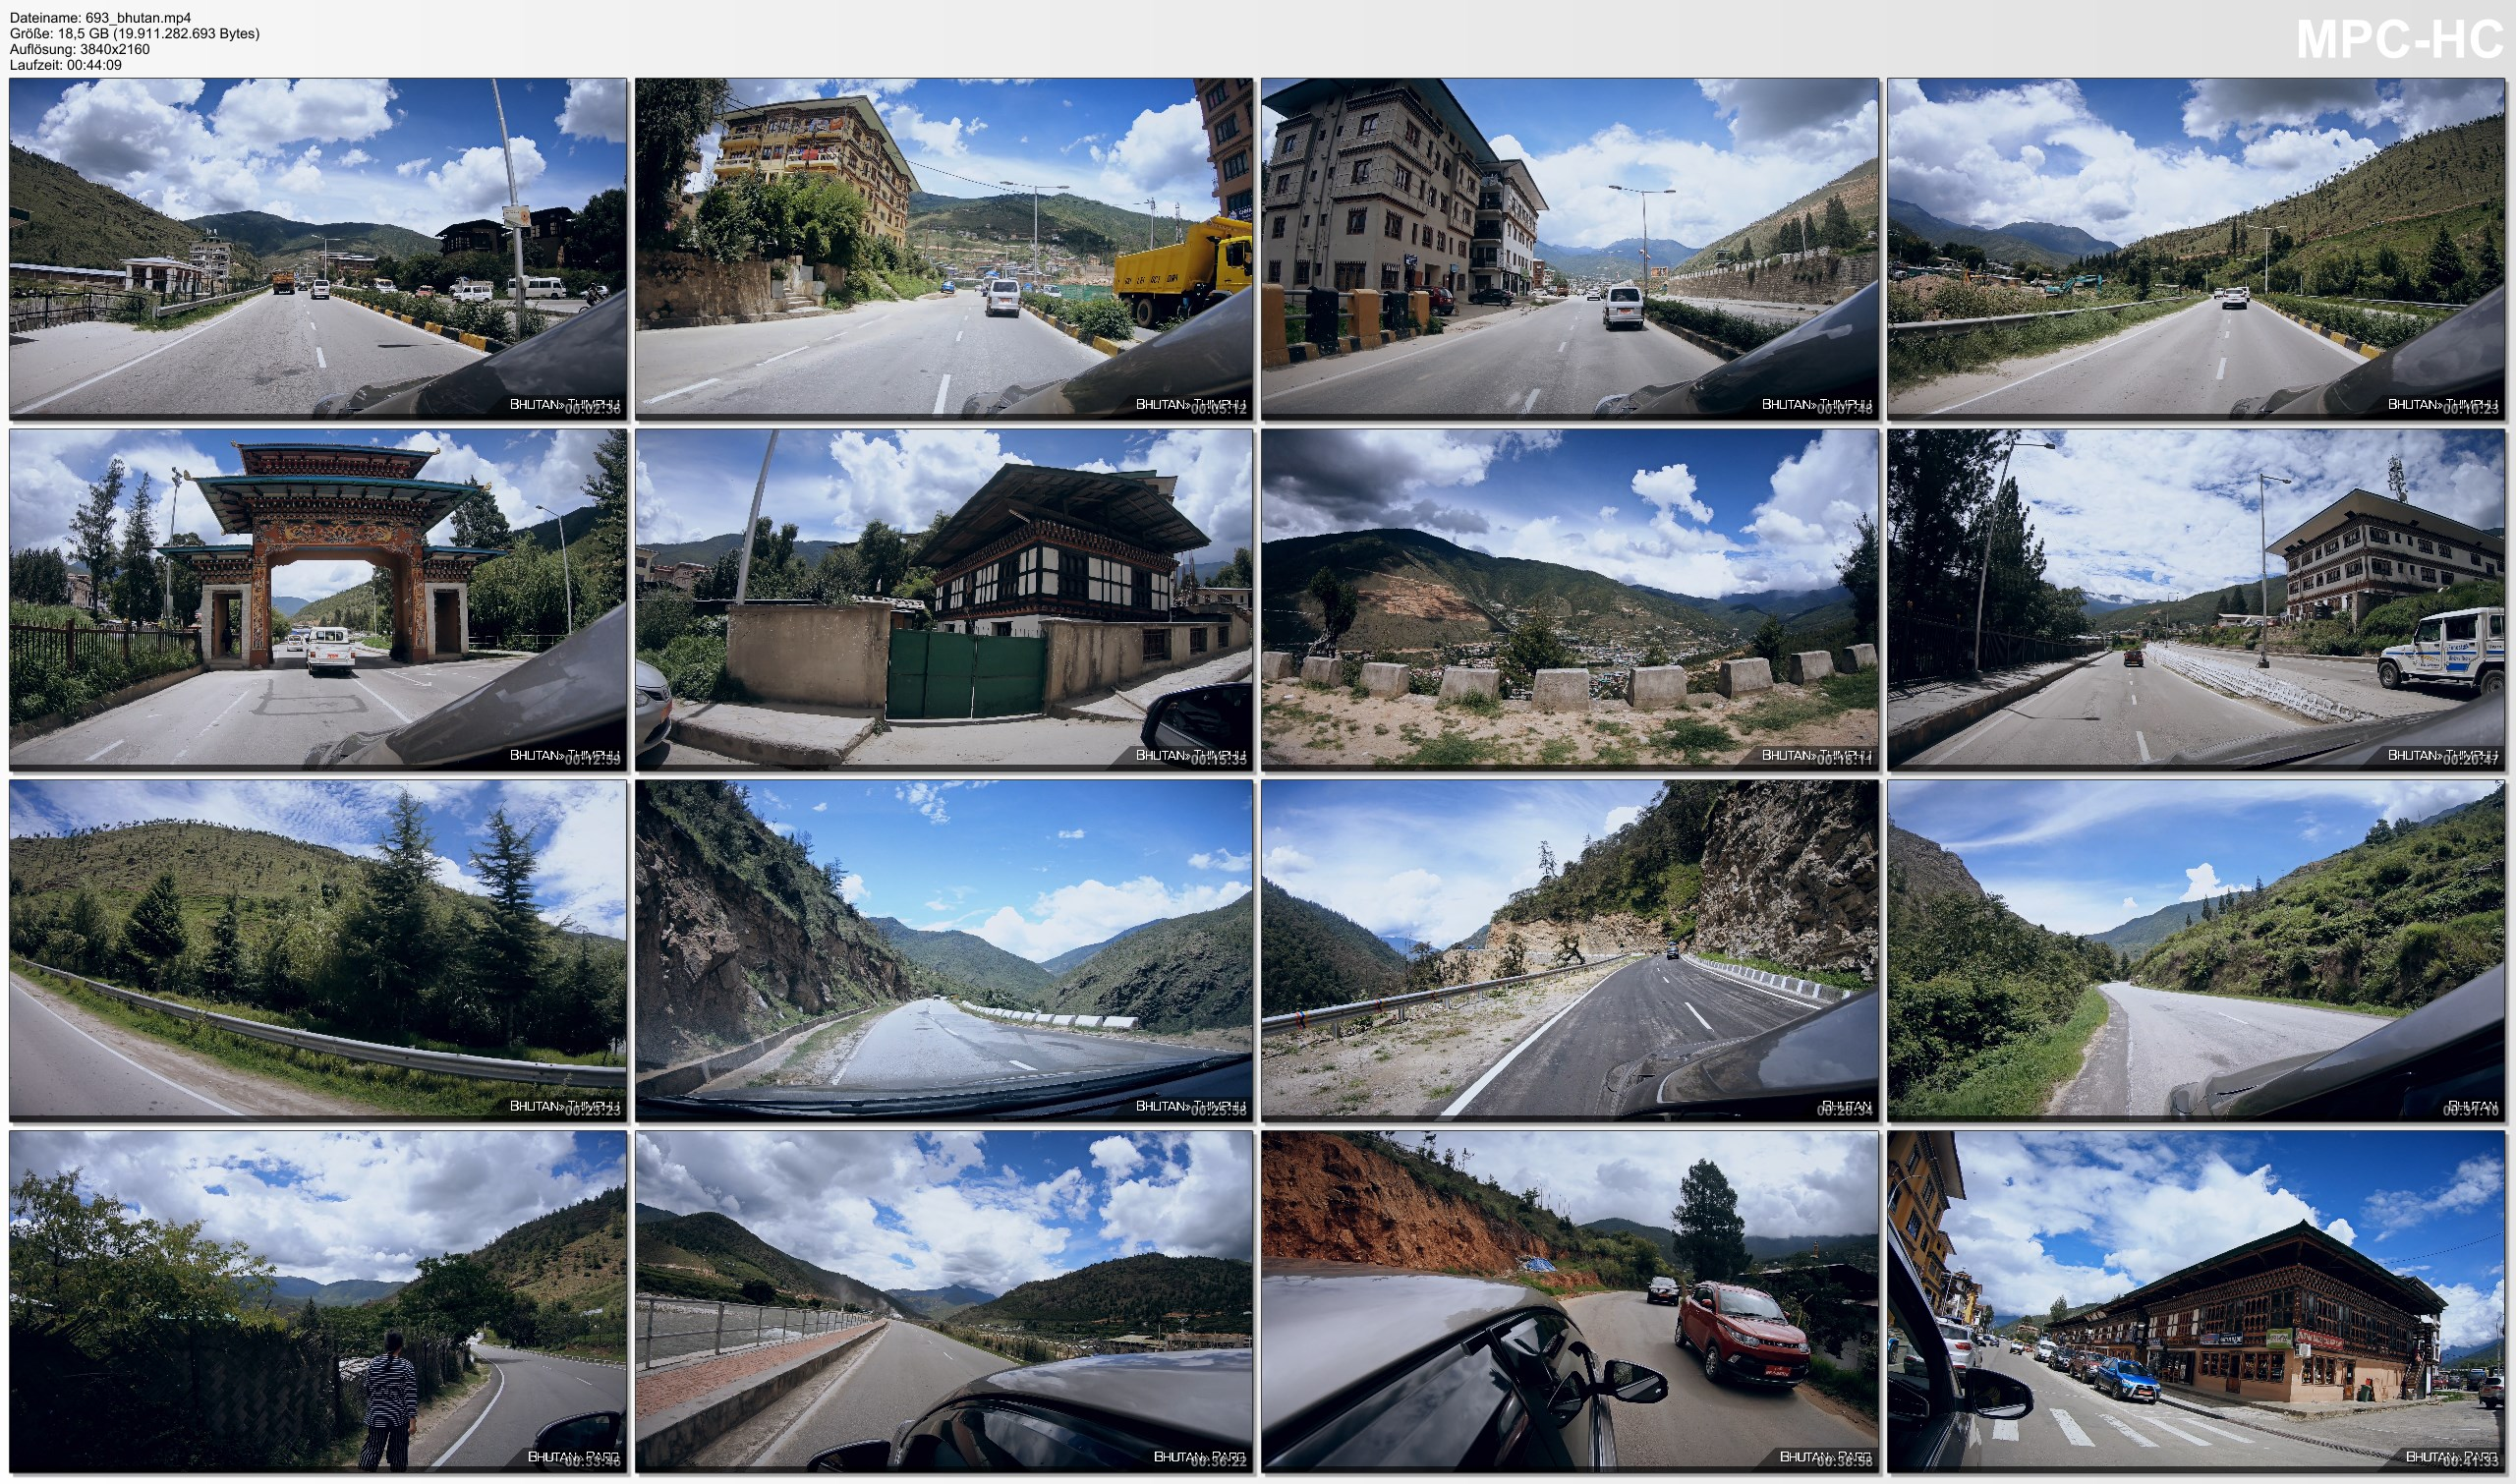 Pictures from Video 【4K】Driving around Bhutan | Paro and Capital Thimphu | Amazing Views 2020 | UltraHD Travel Video